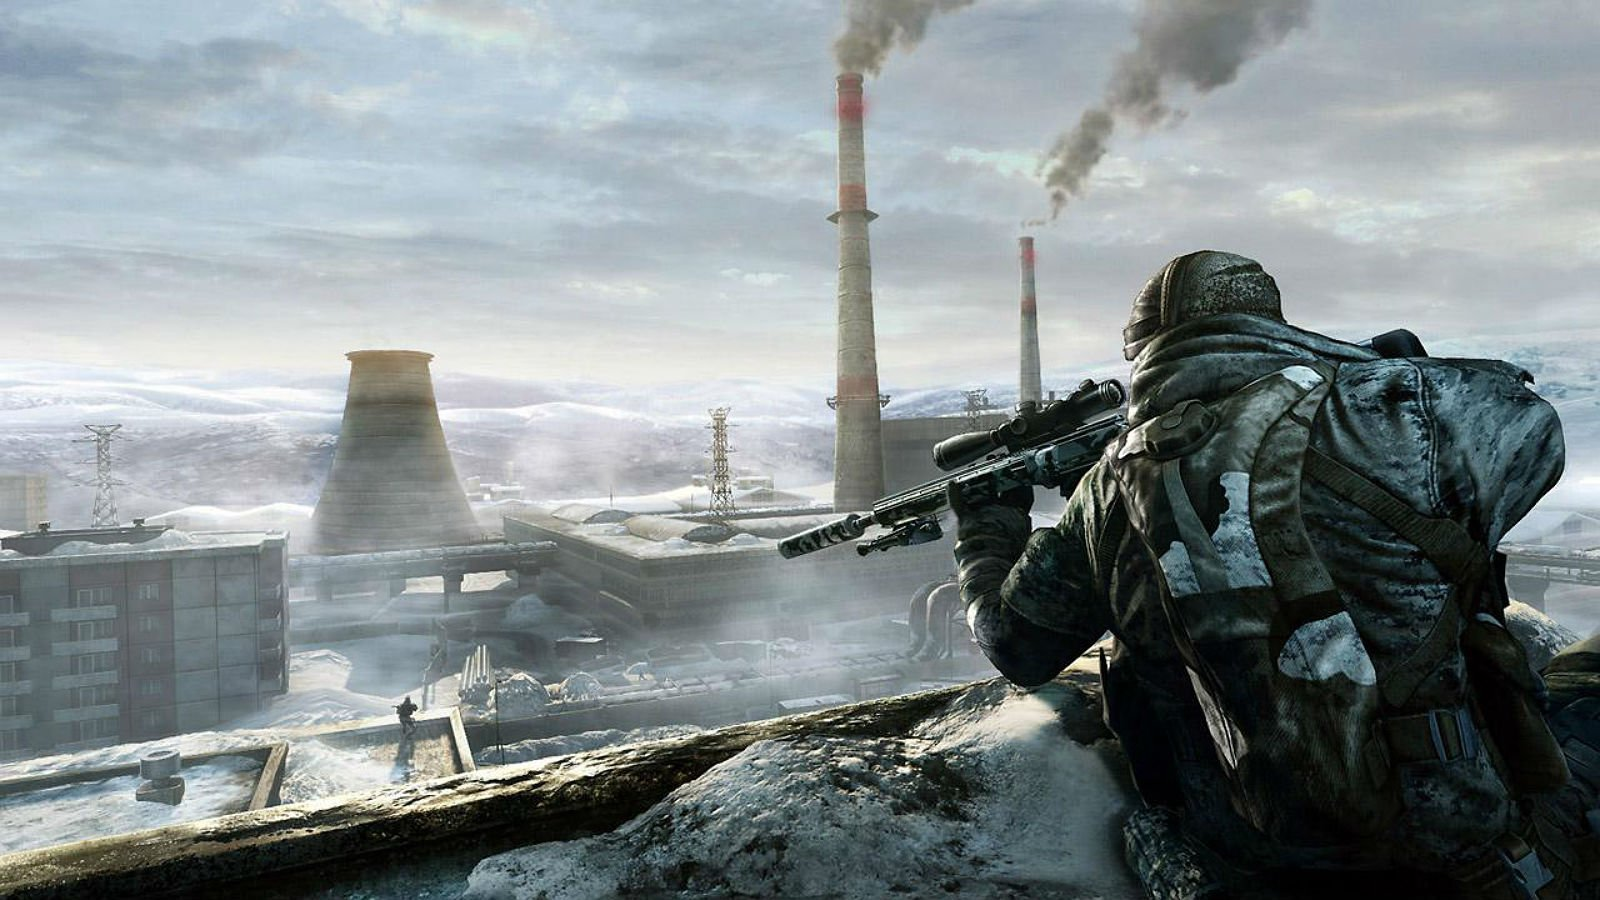 SNIPER Ghost Warrior Military Shooter Stealth Action